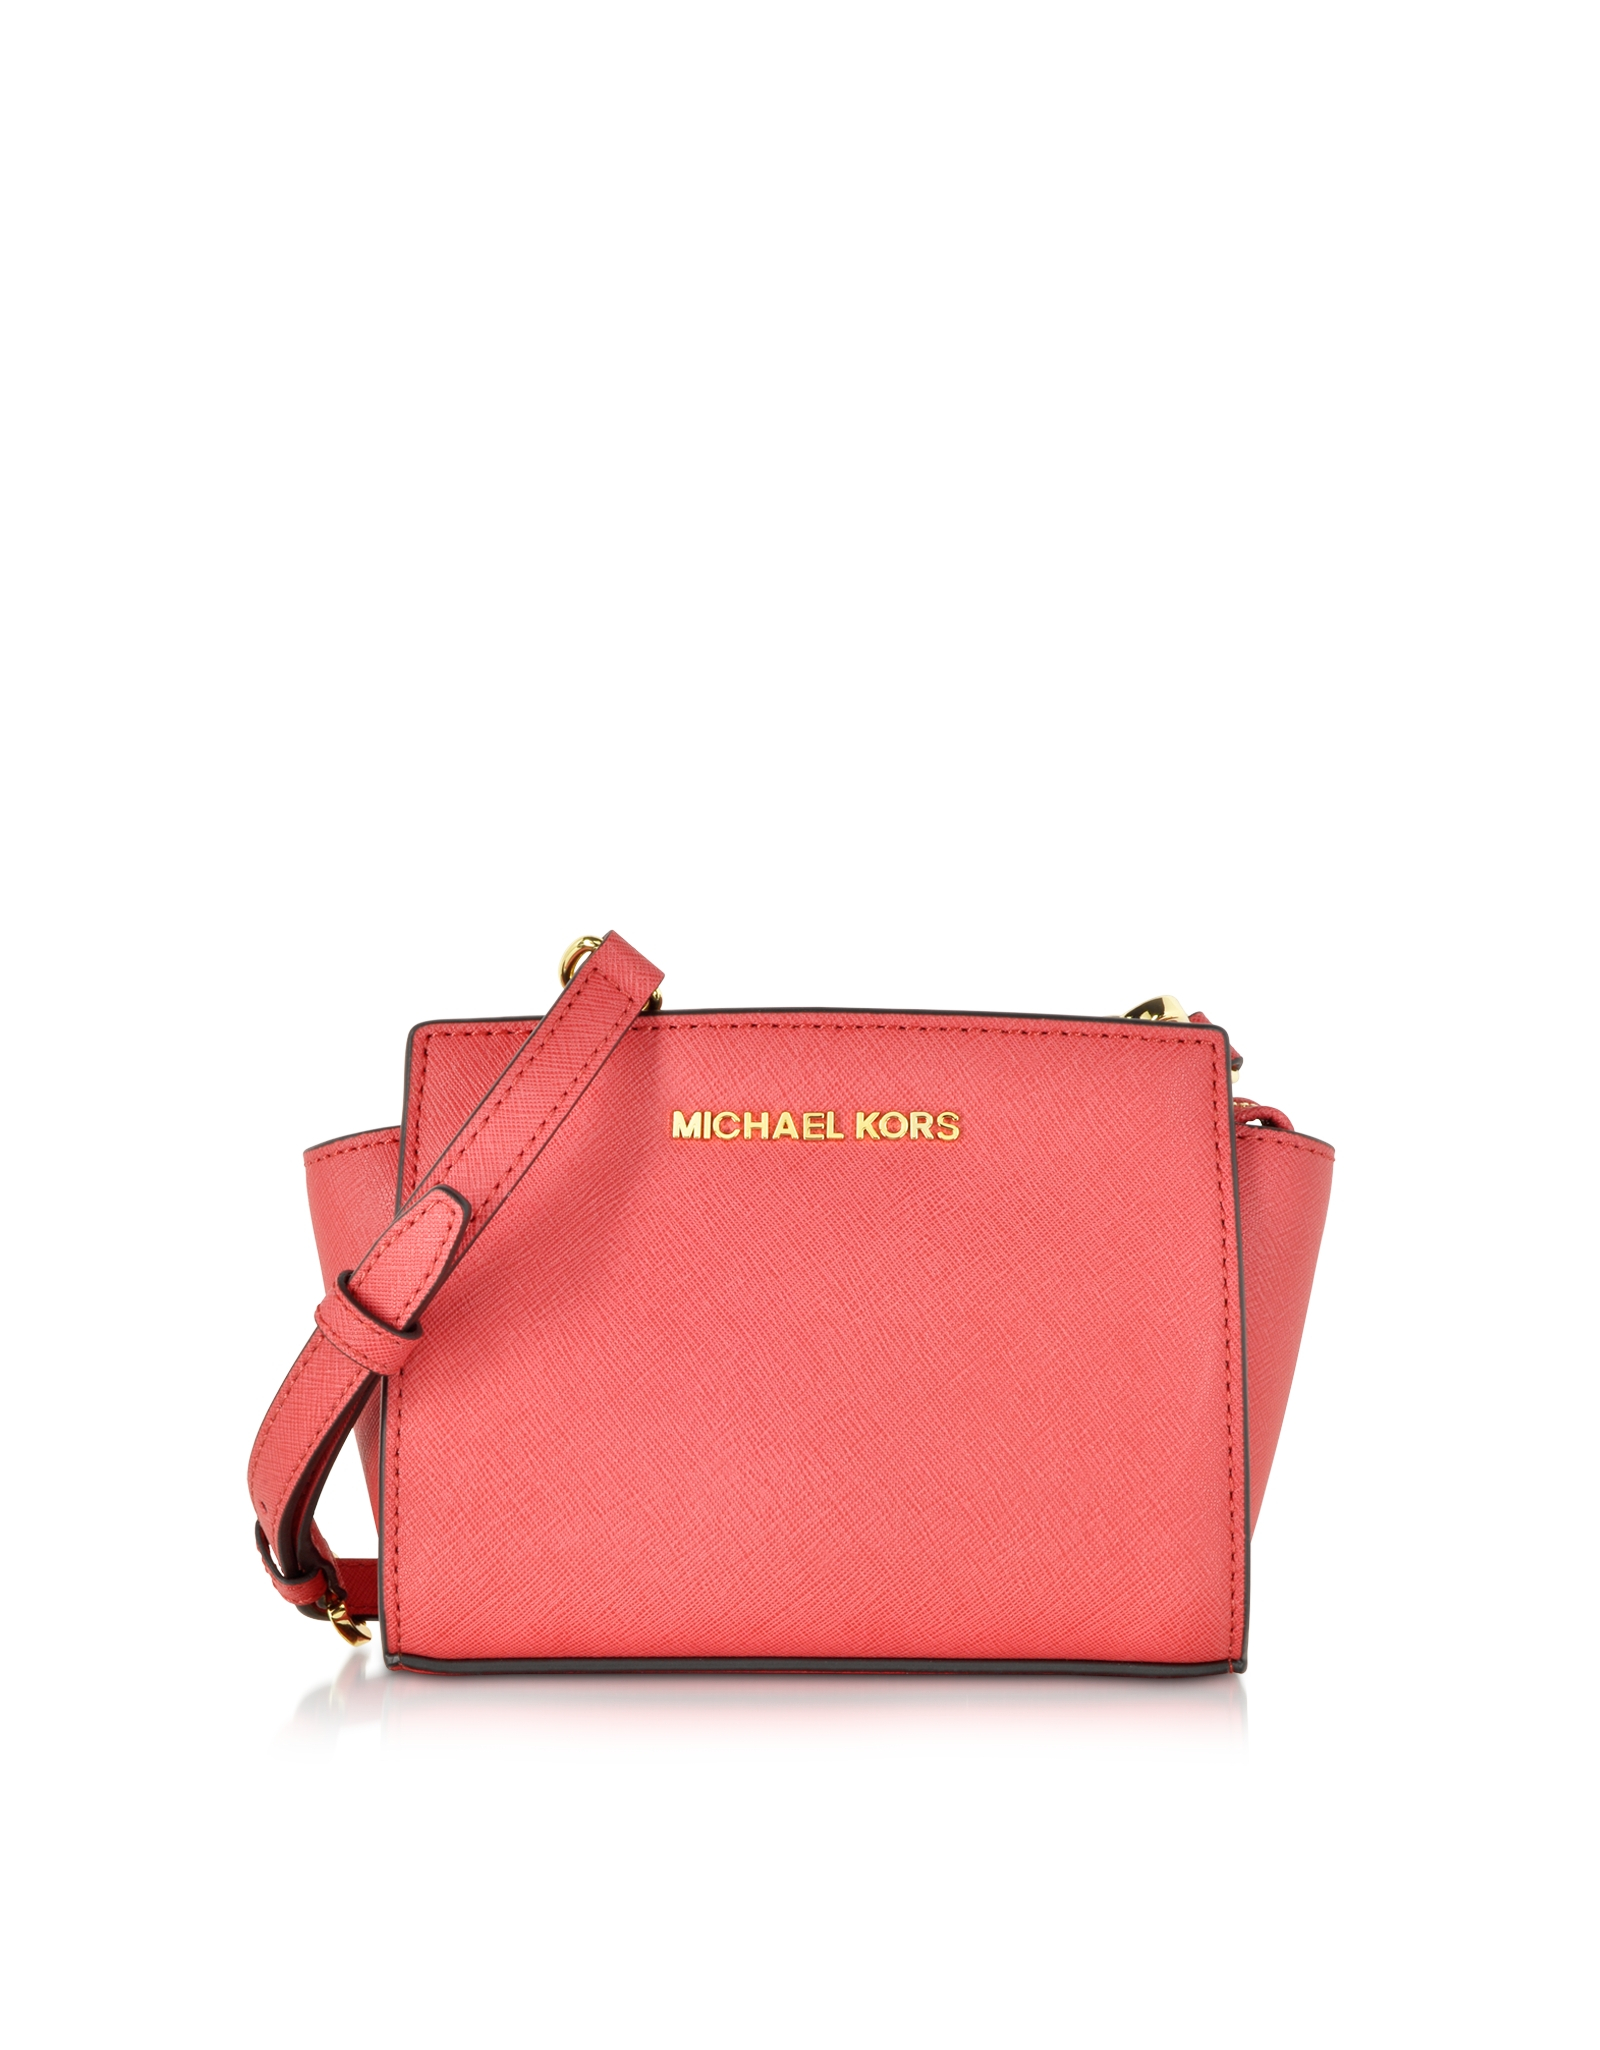 07e79705e57b michael kors selma mini watermelon red jet set bag - Marwood ...